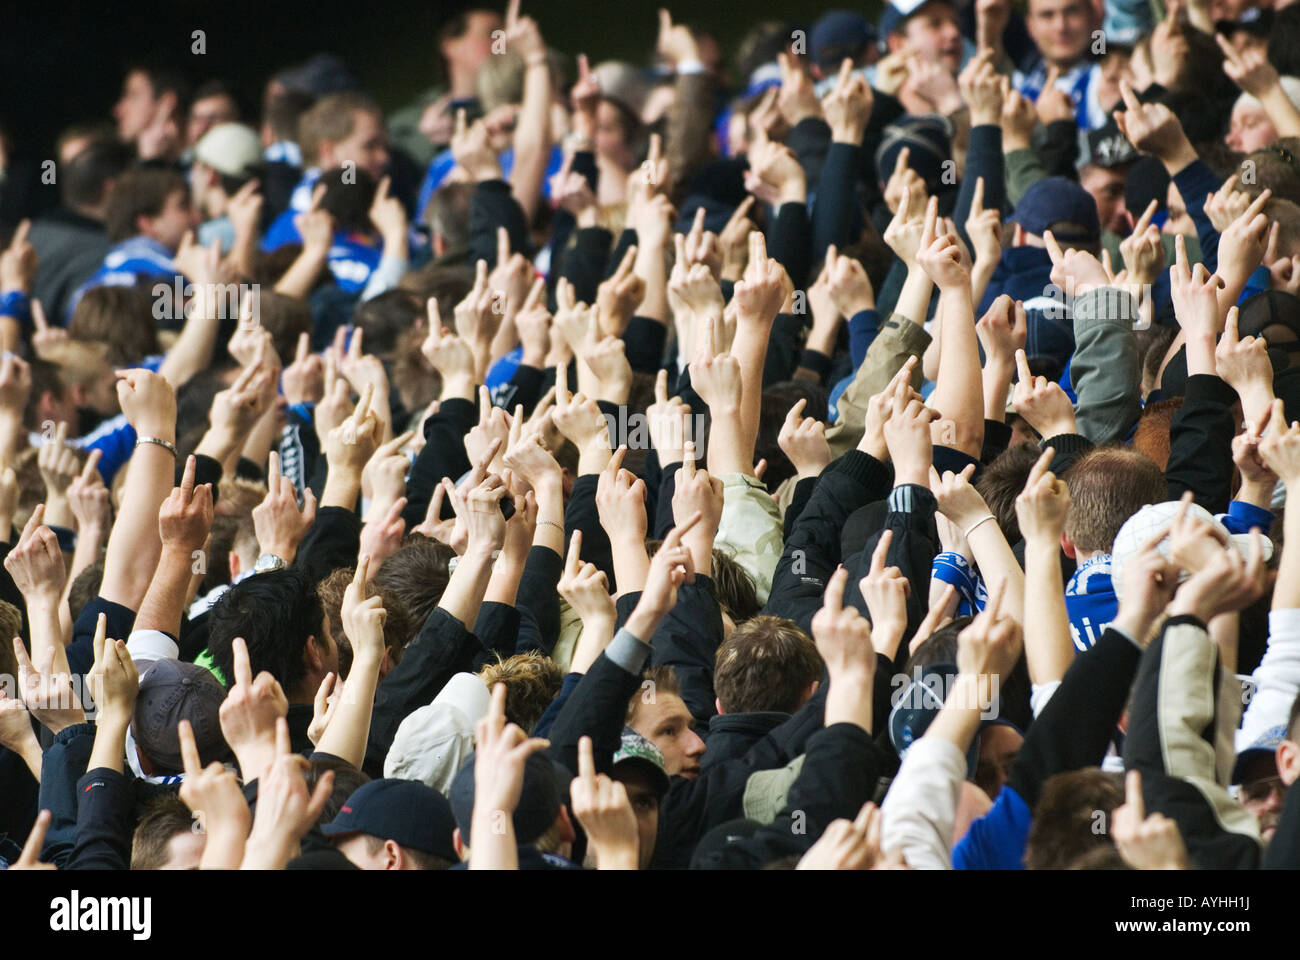 football fans of Schalke 04 show their outstreched middle fingers to the opposing team - Stock Image